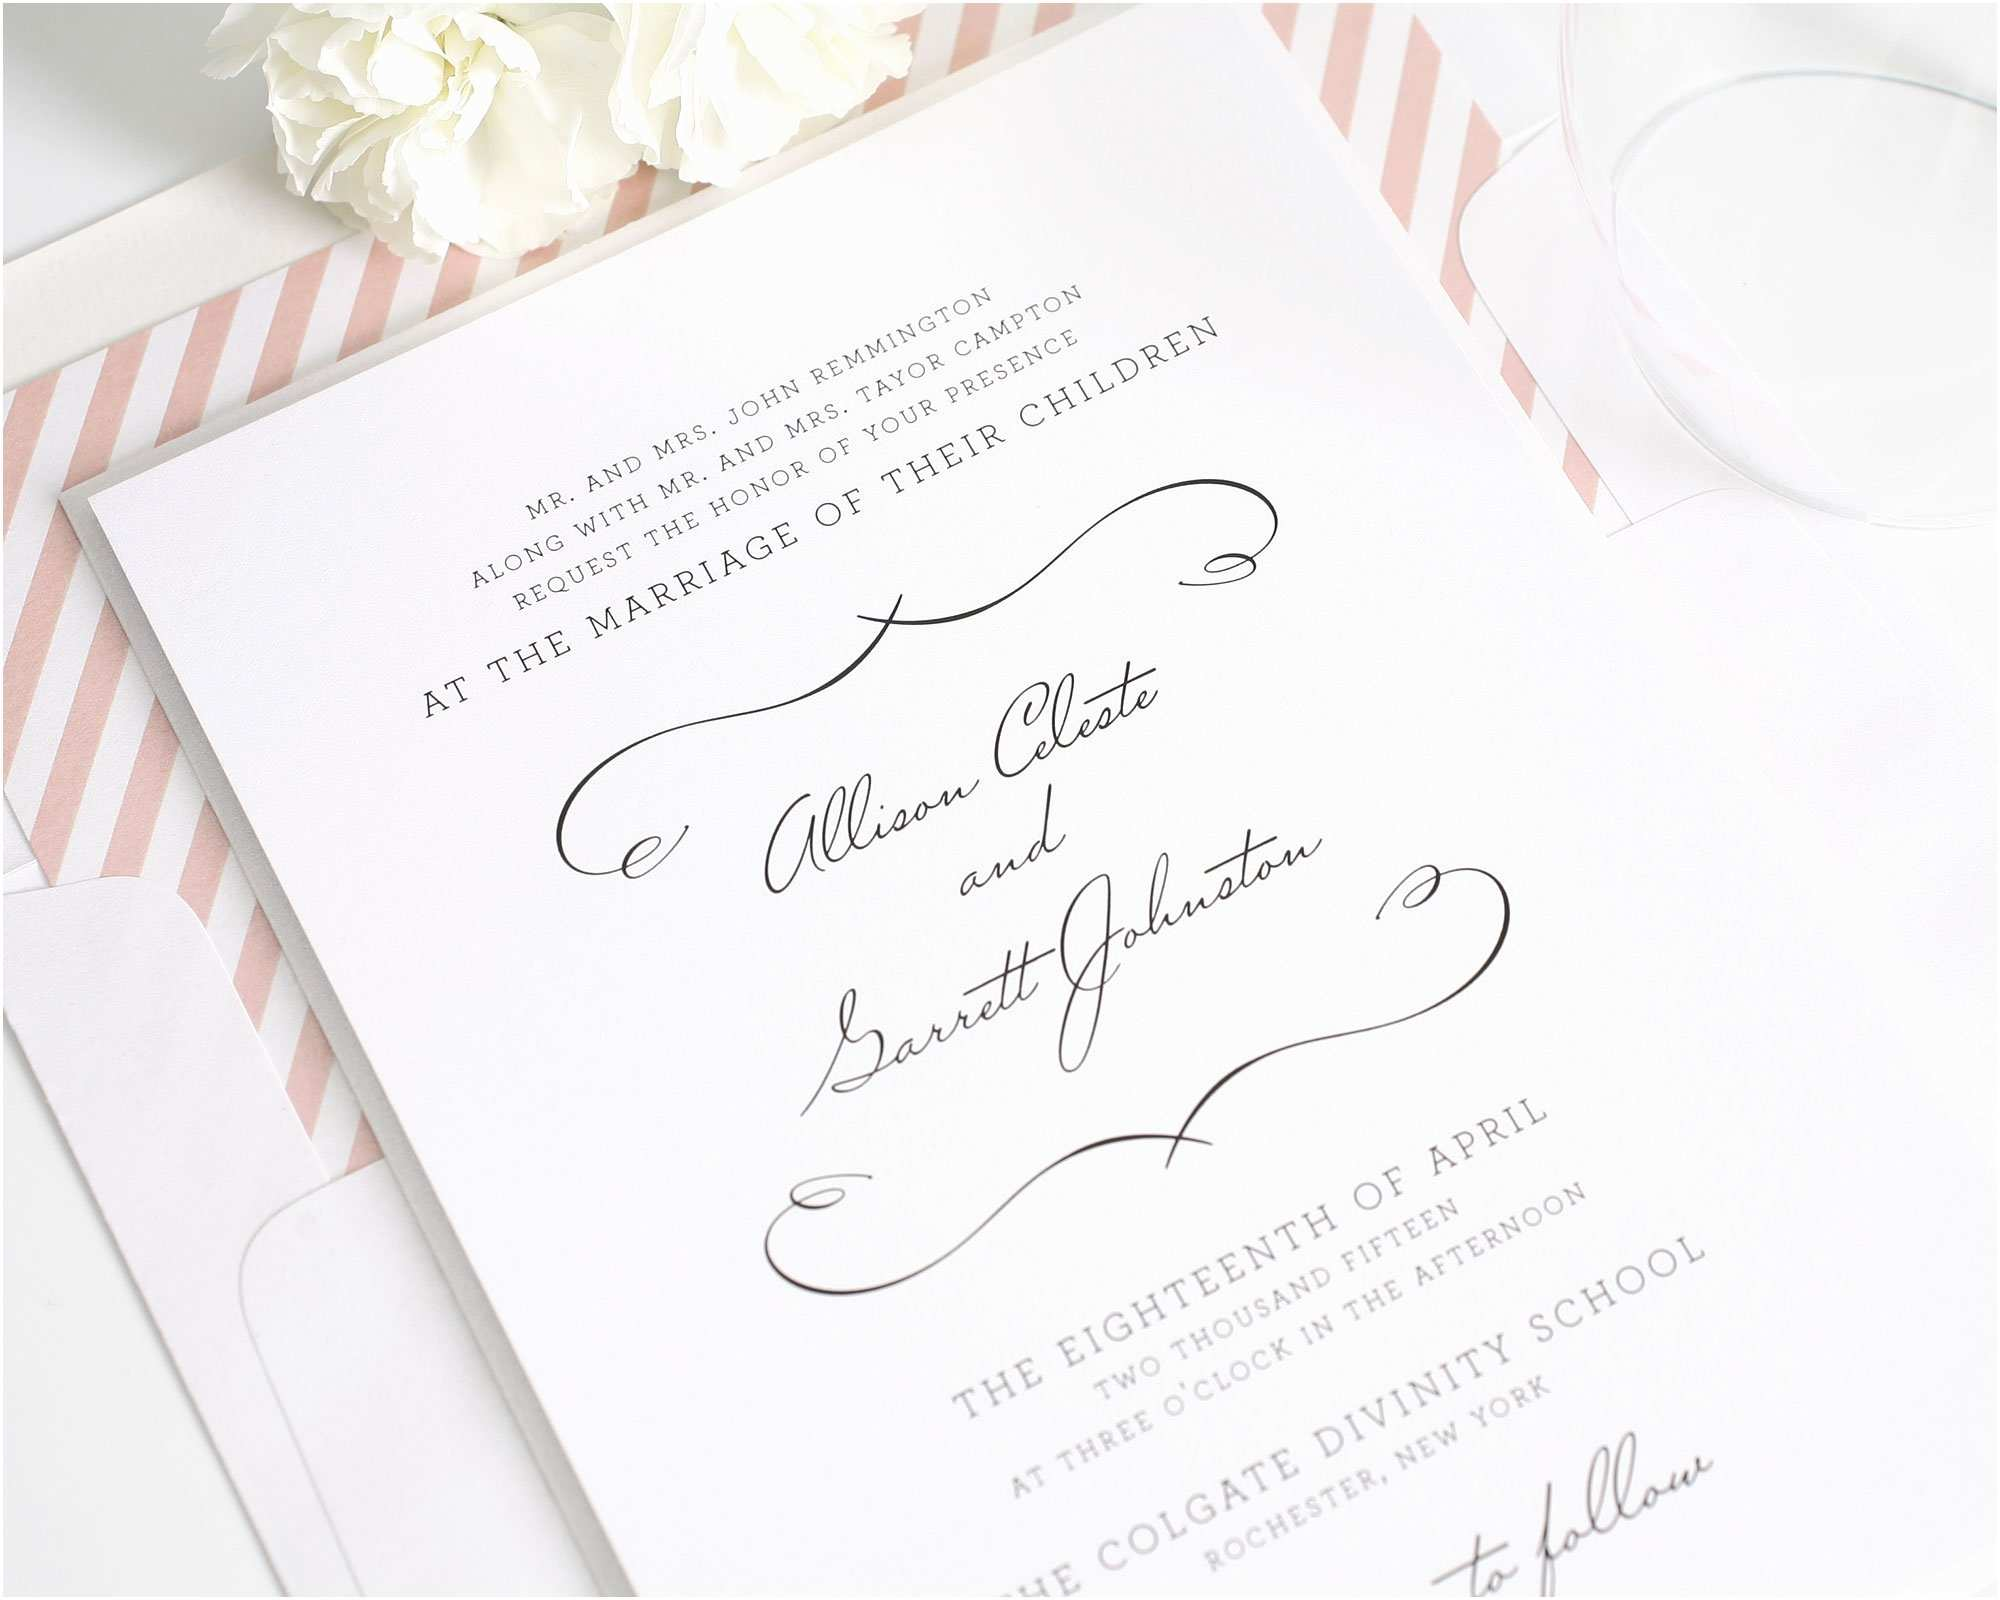 Country Chic Wedding Invitations Chic Country Wedding Invitations In Blush – Wedding